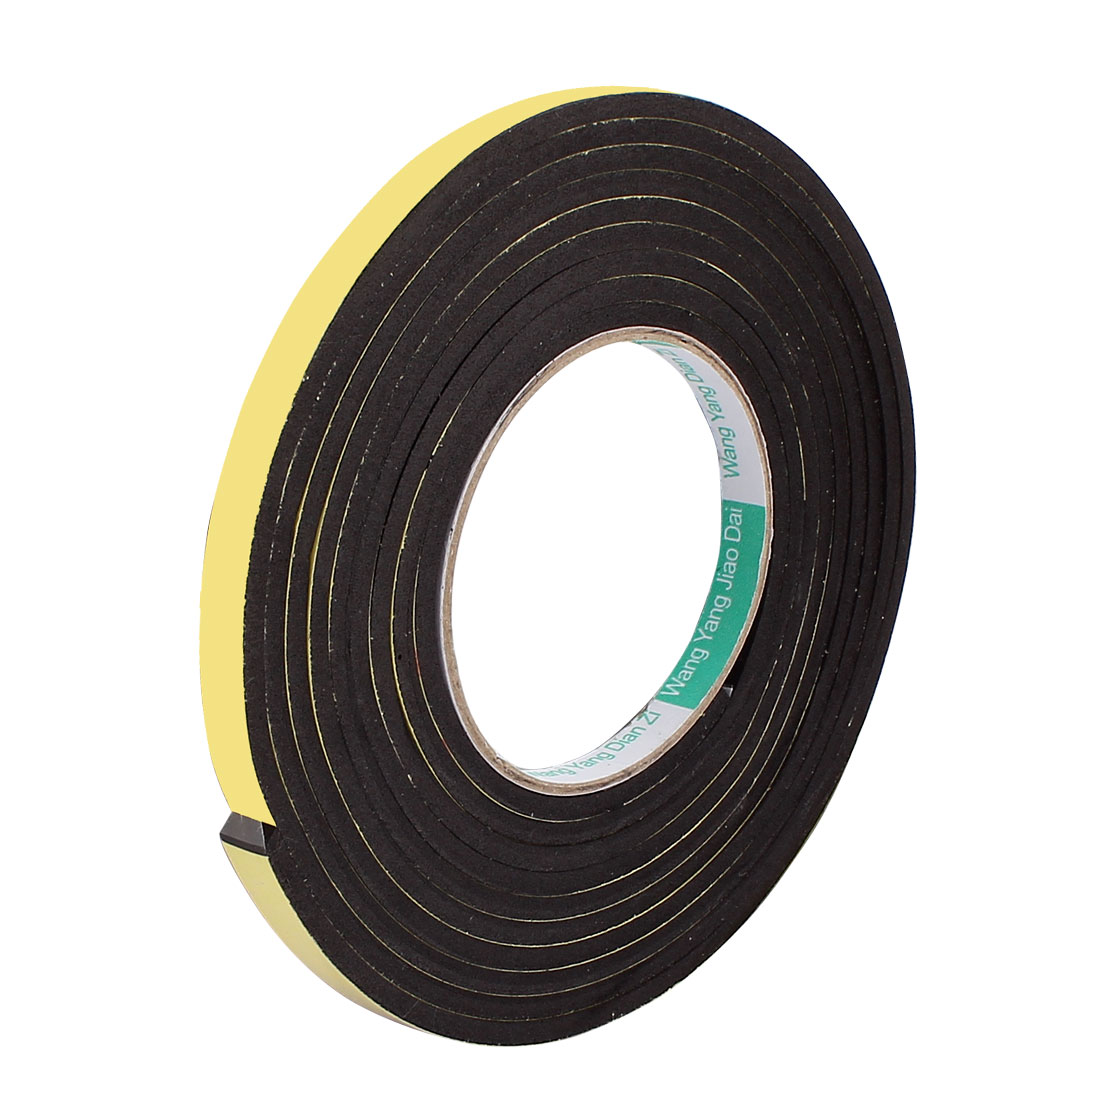 10mmx4mm Single Sided Sponge Tape Adhesive Sticker Foam Glue Strip Sealing 3 Meters 10Ft